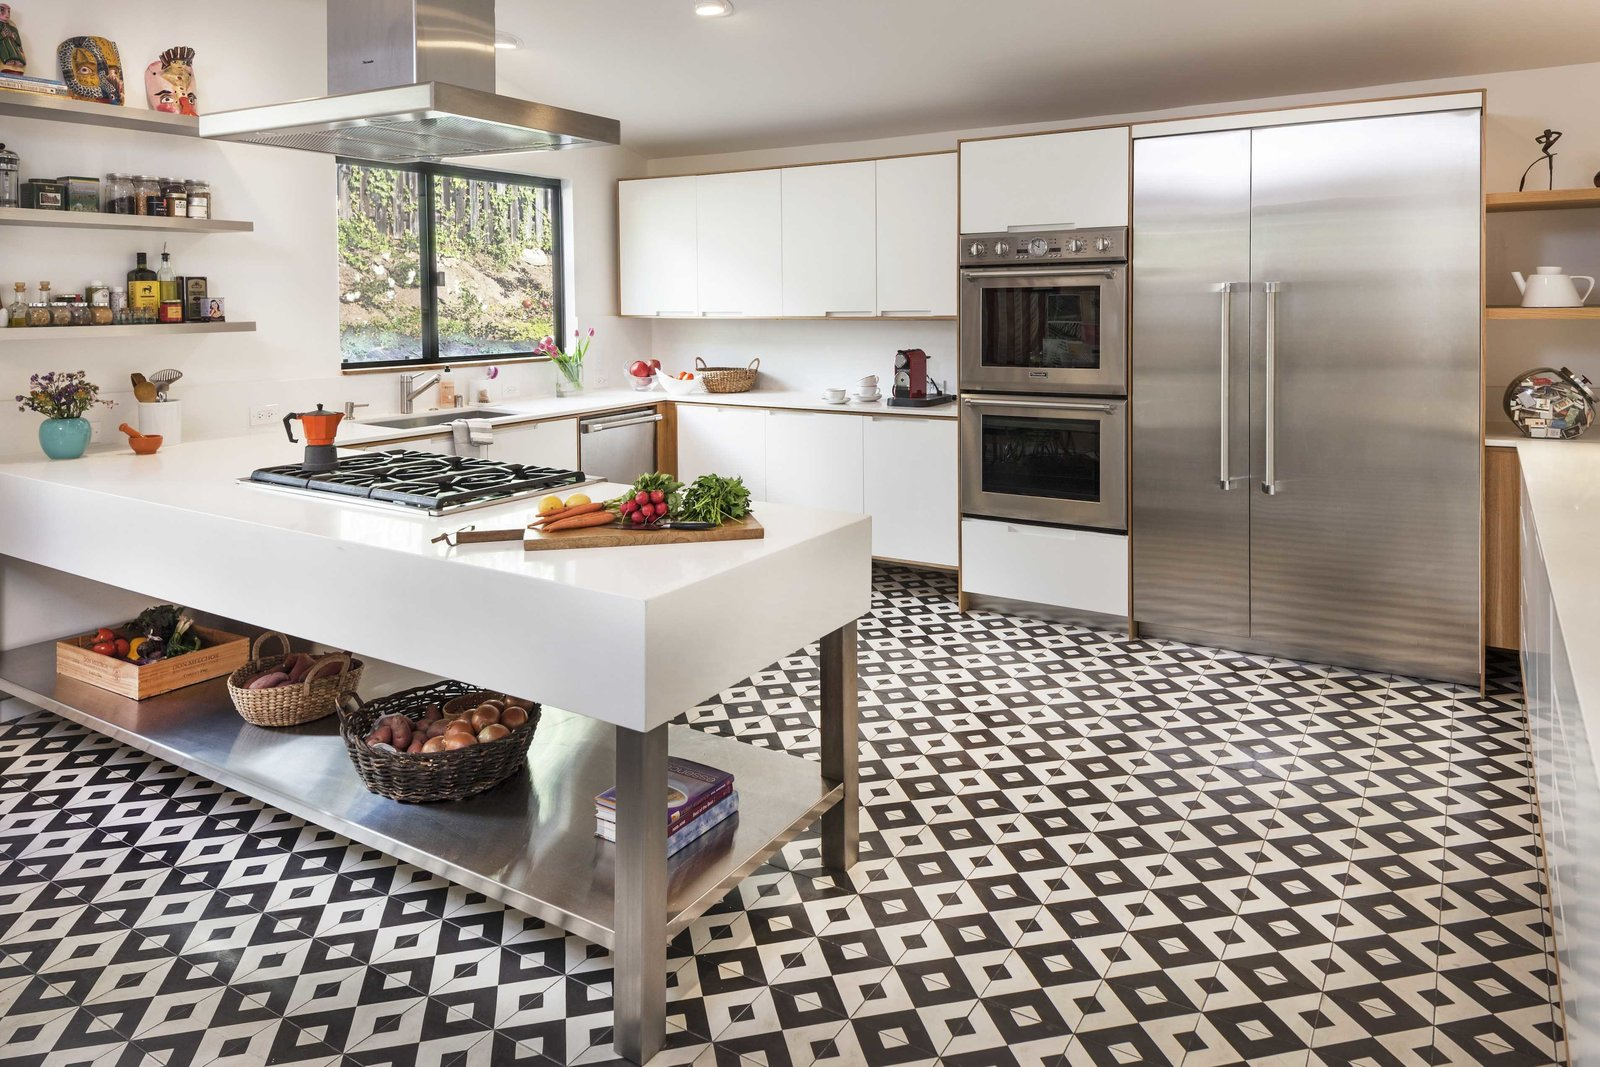 The renovation of the kitchen added 100 square feet to the space, along with larger windows to let in more light. The appliances are Thermador, and the black-and-white floor tile by Granada Tile. 12 Creative Ways to Use Tile in Your Home - Photo 13 of 13